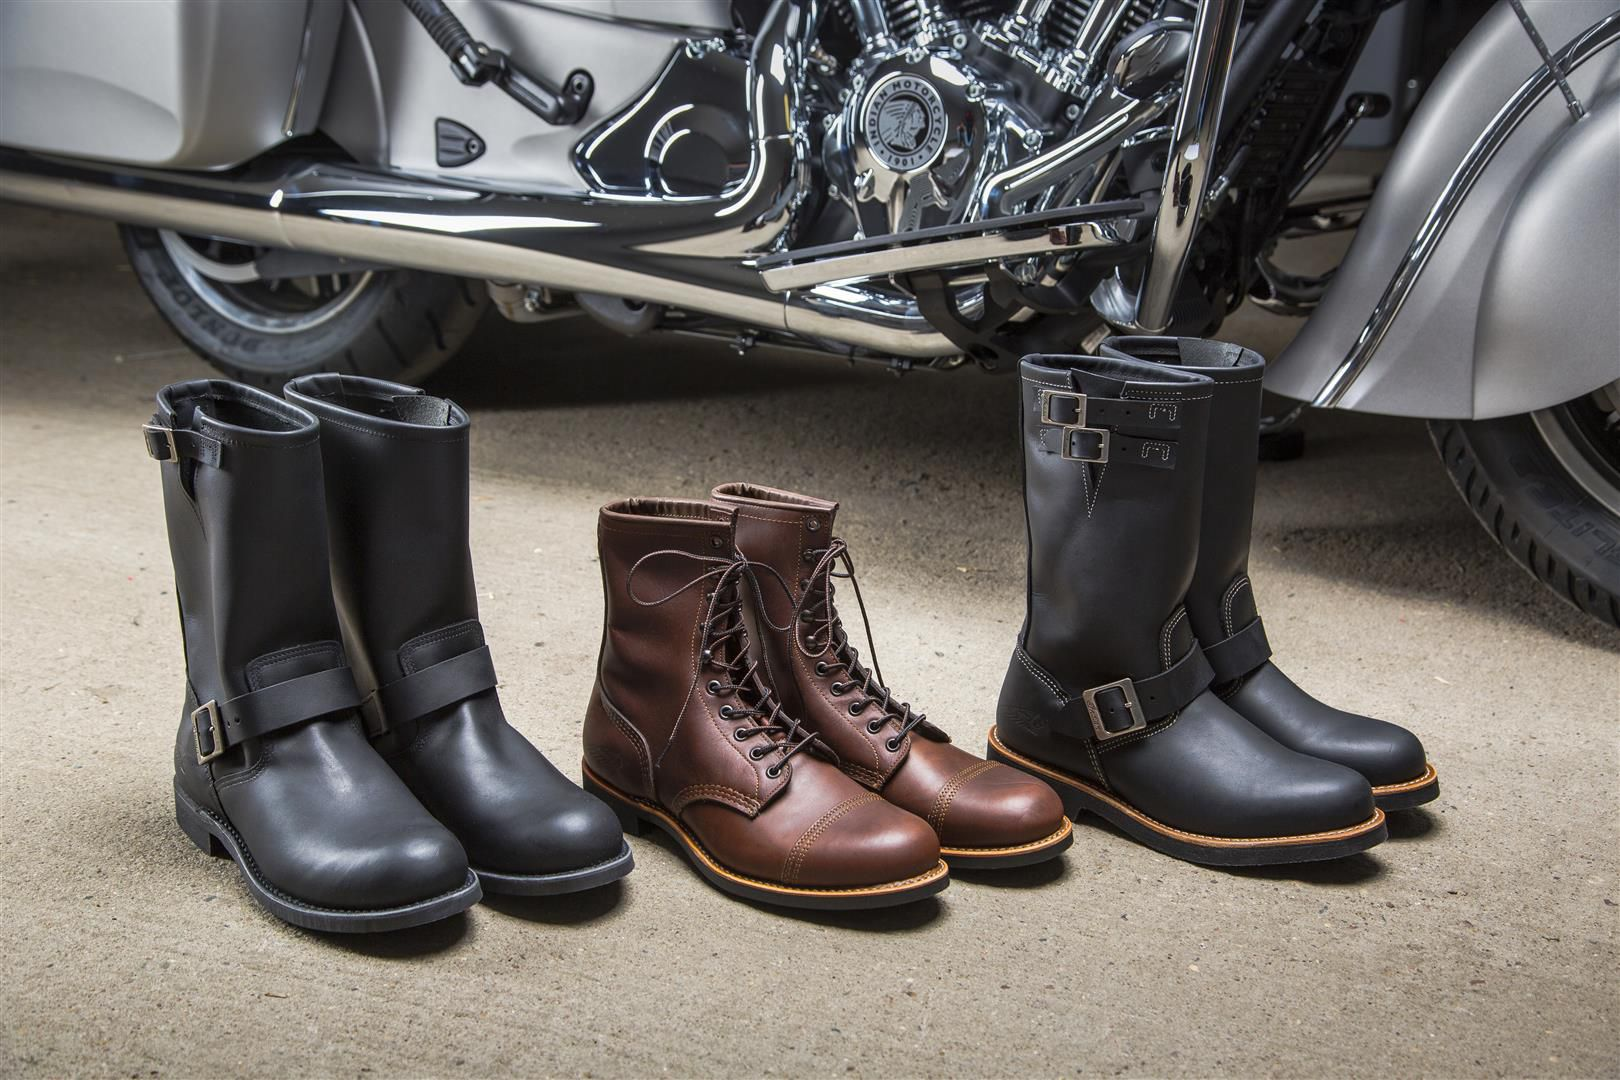 5107d8a099a Red Wing Motorcycle Boots by Indian   Cycle World